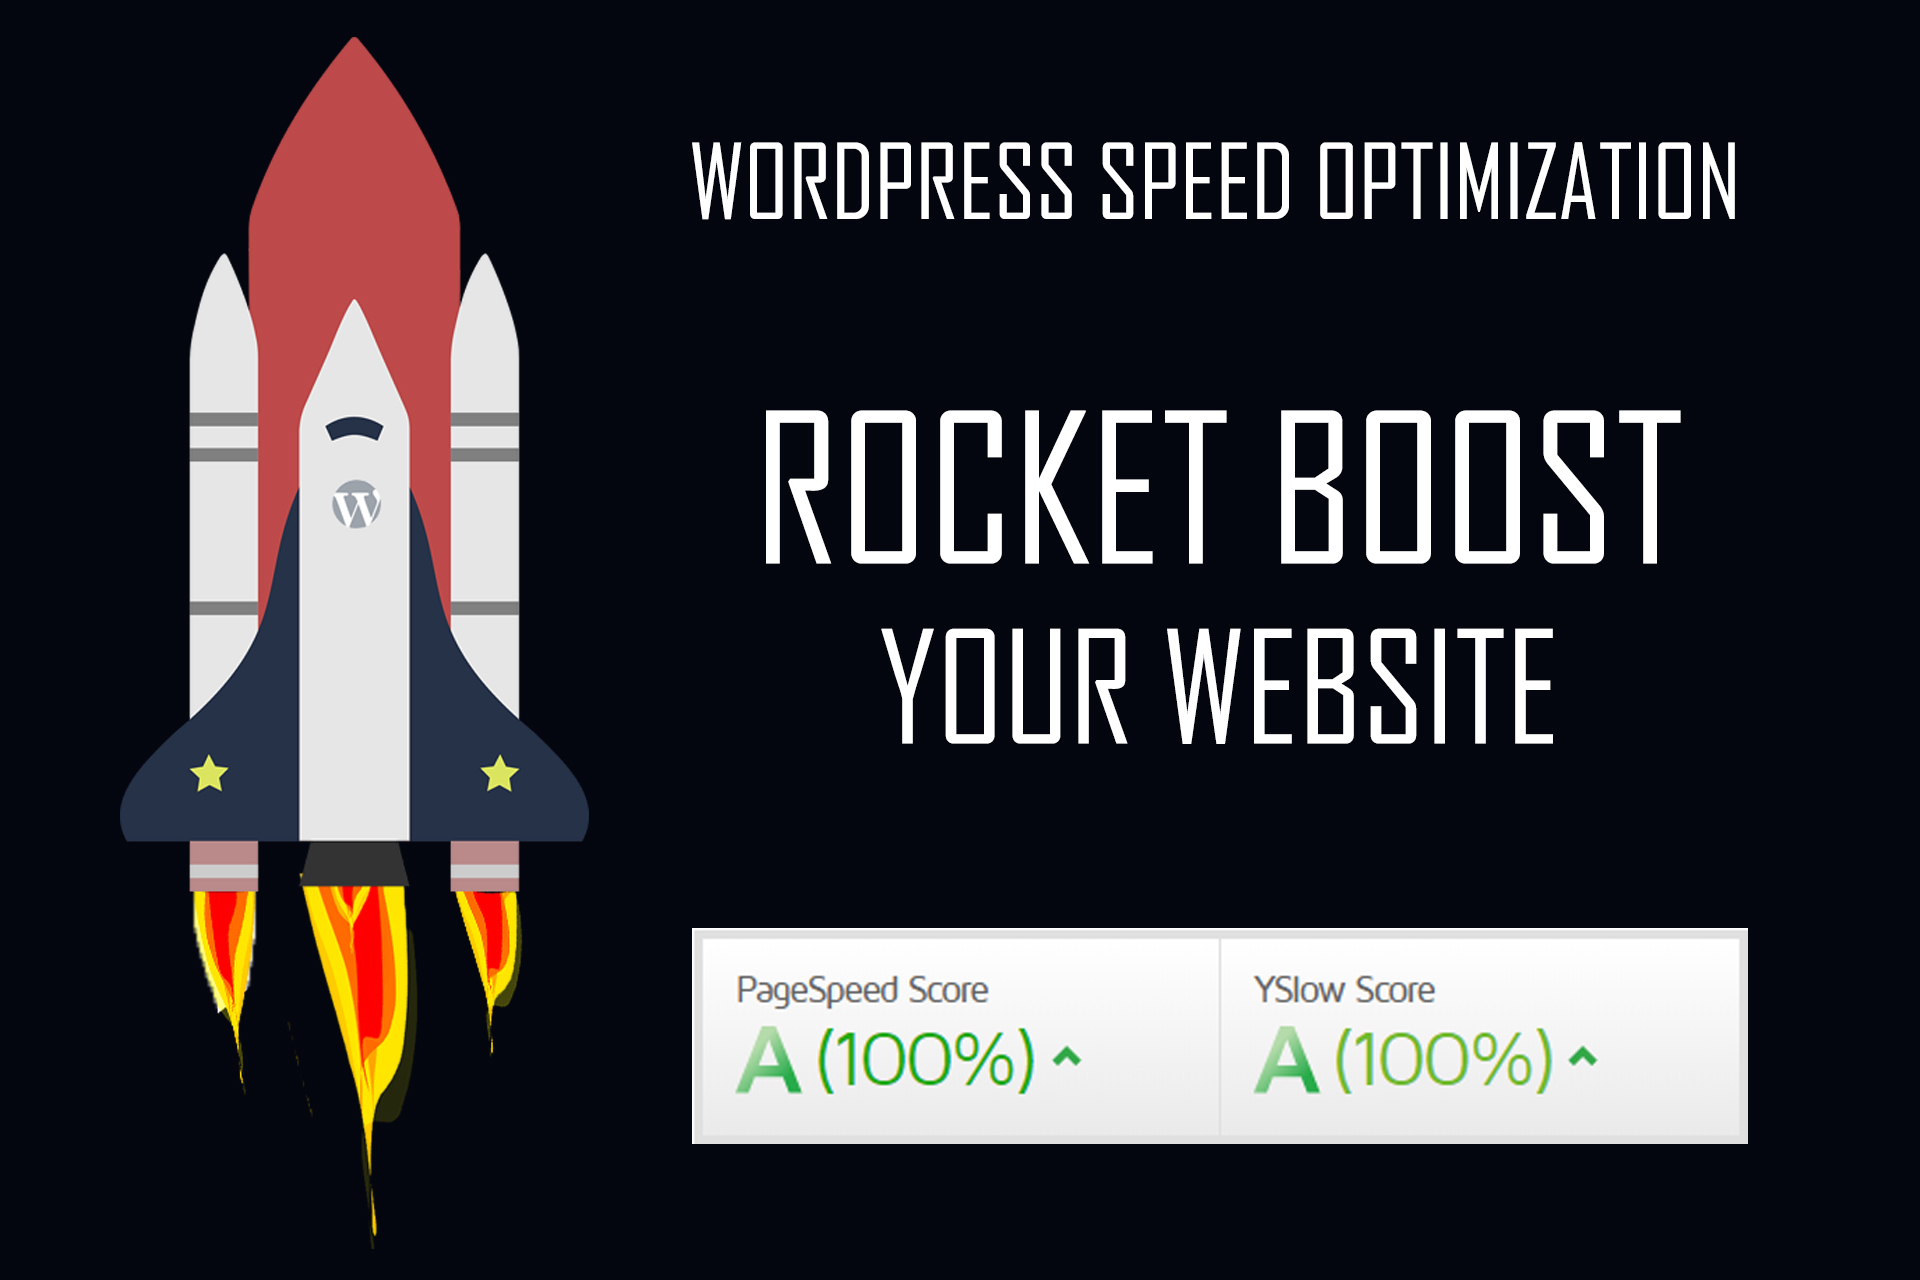 OPTIMIZE YOUR WORDESS WEBSITE SPEED